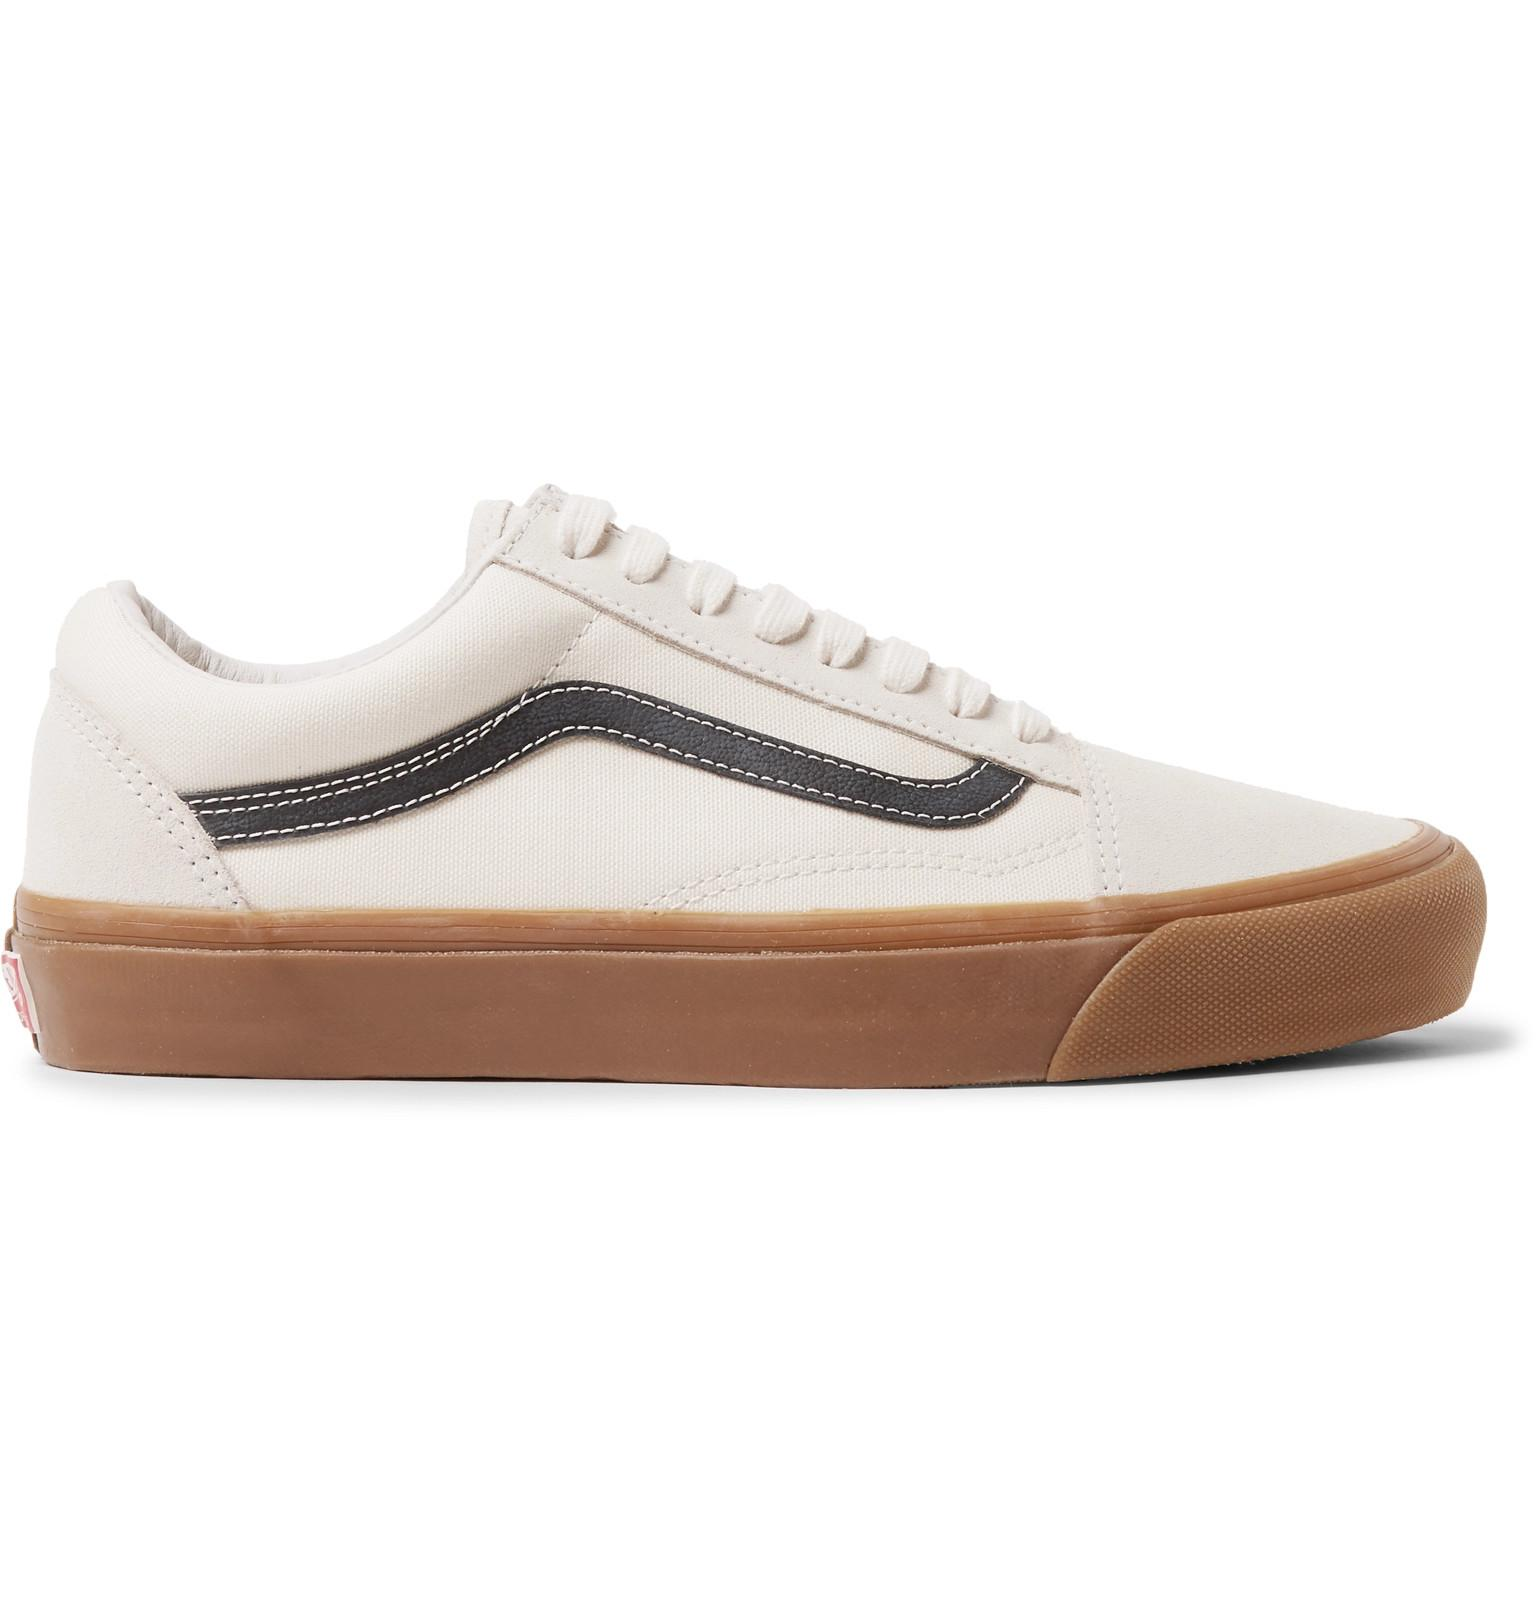 331186e5e9f840 Lyst - Vans Og Old Skool Lx Leather-trimmed Canvas And Suede ...